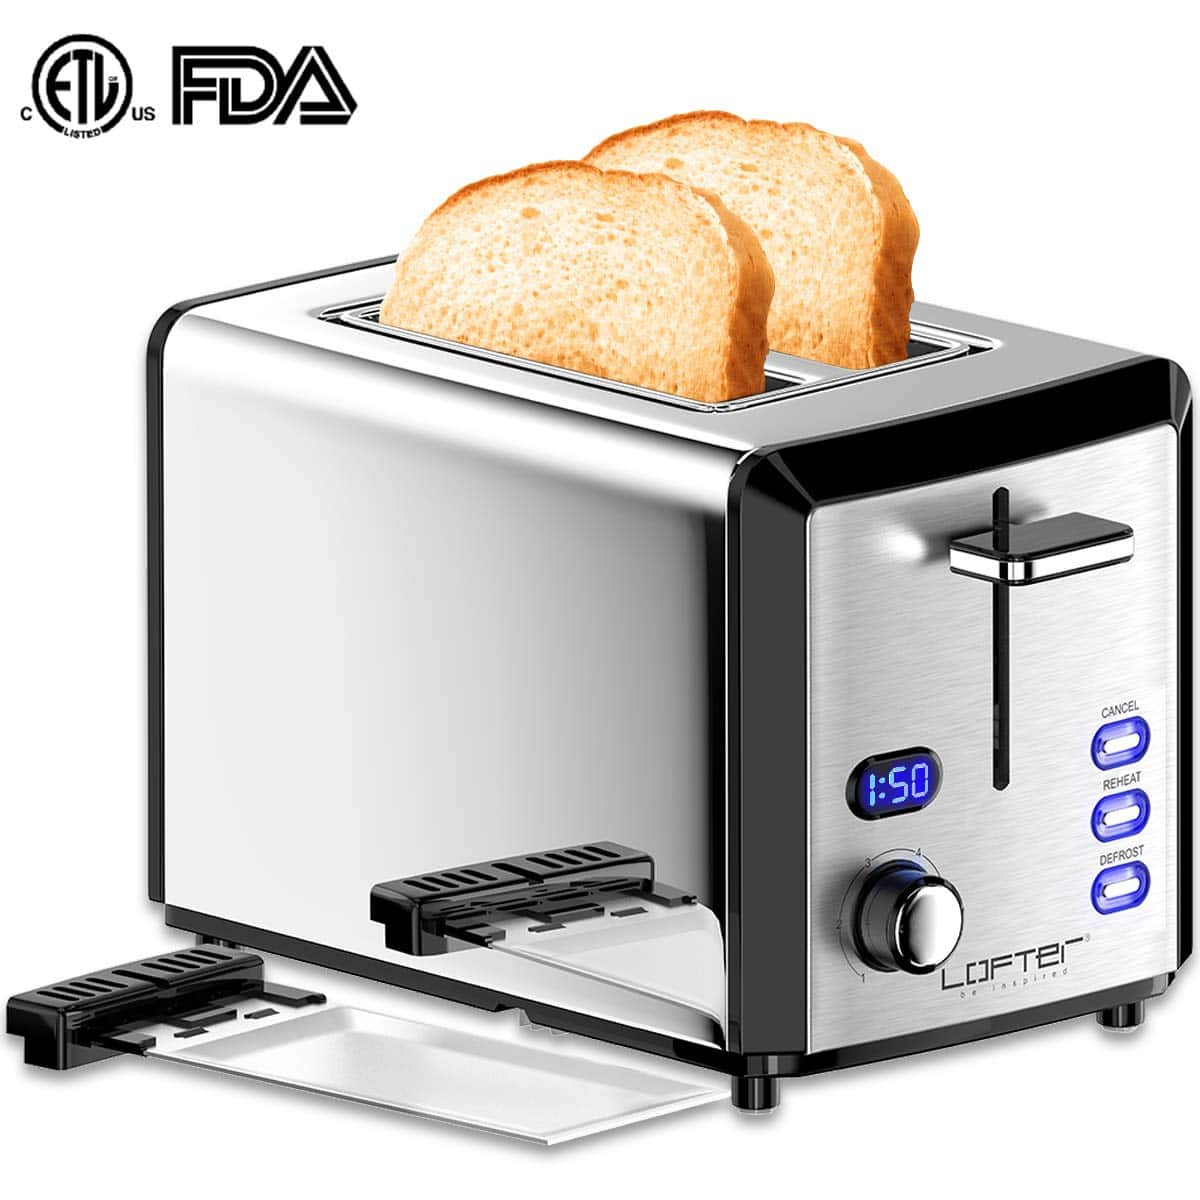 2 Slice Toaster, Mirror Stainless Steel Toaster Extra Wide Slots Toasters with 6 Shade Settings, Compact LED Display $24.99